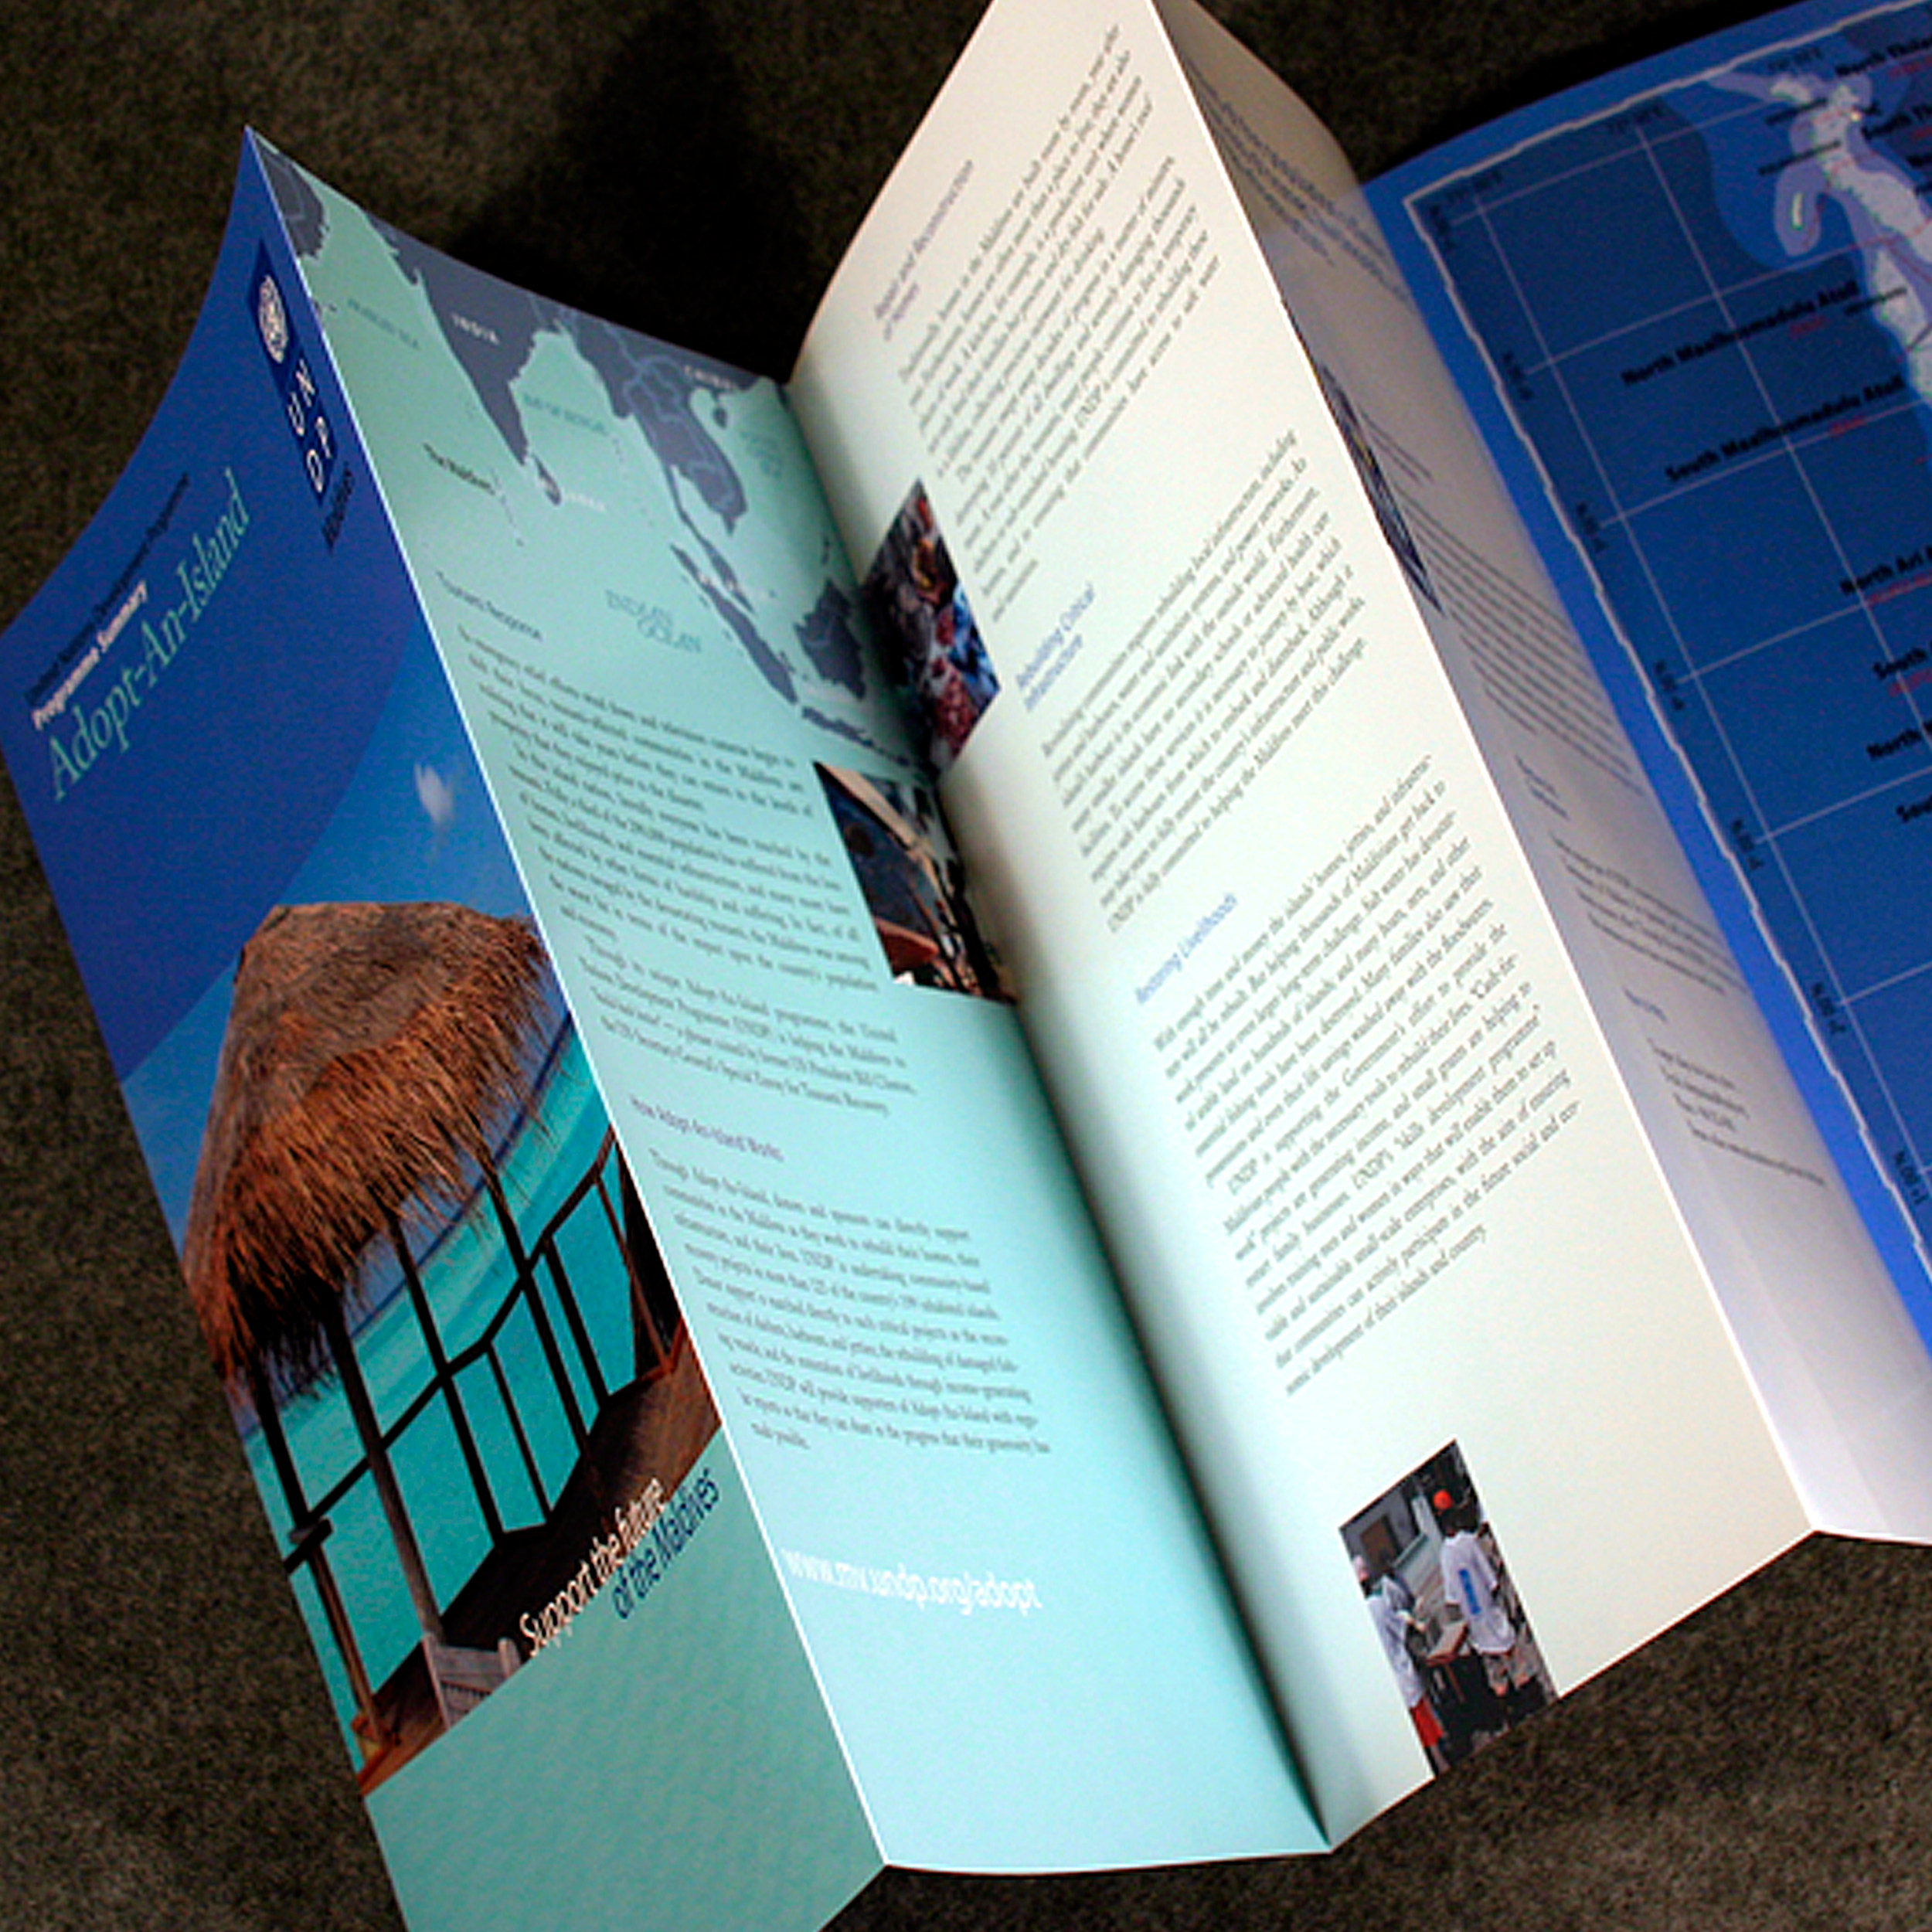 Adopt-An-Island Campaign – Brochure, Side B   As part of the informative and fundraising package for Adopt-An-Island, This side of the 10-panel brochure presented the solutions UNDP was planning. Side B